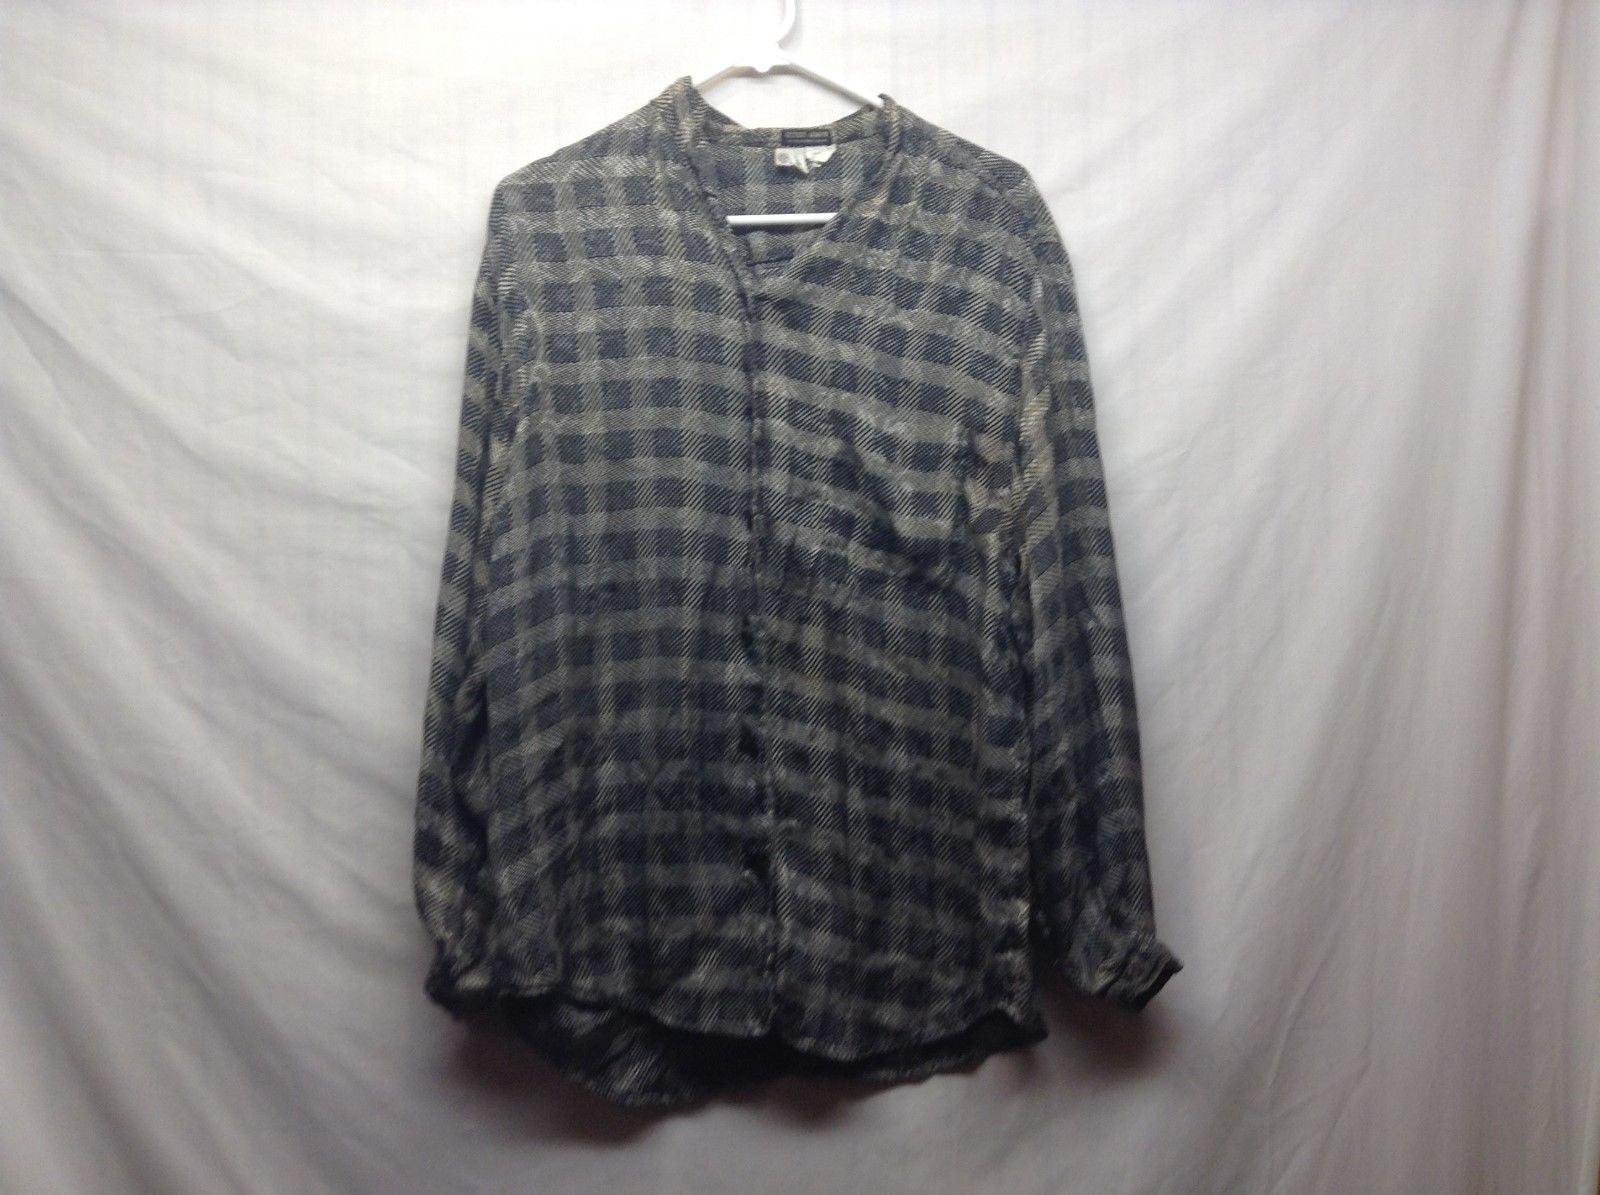 Giorgio Armani Checkered Blouse Sz 44